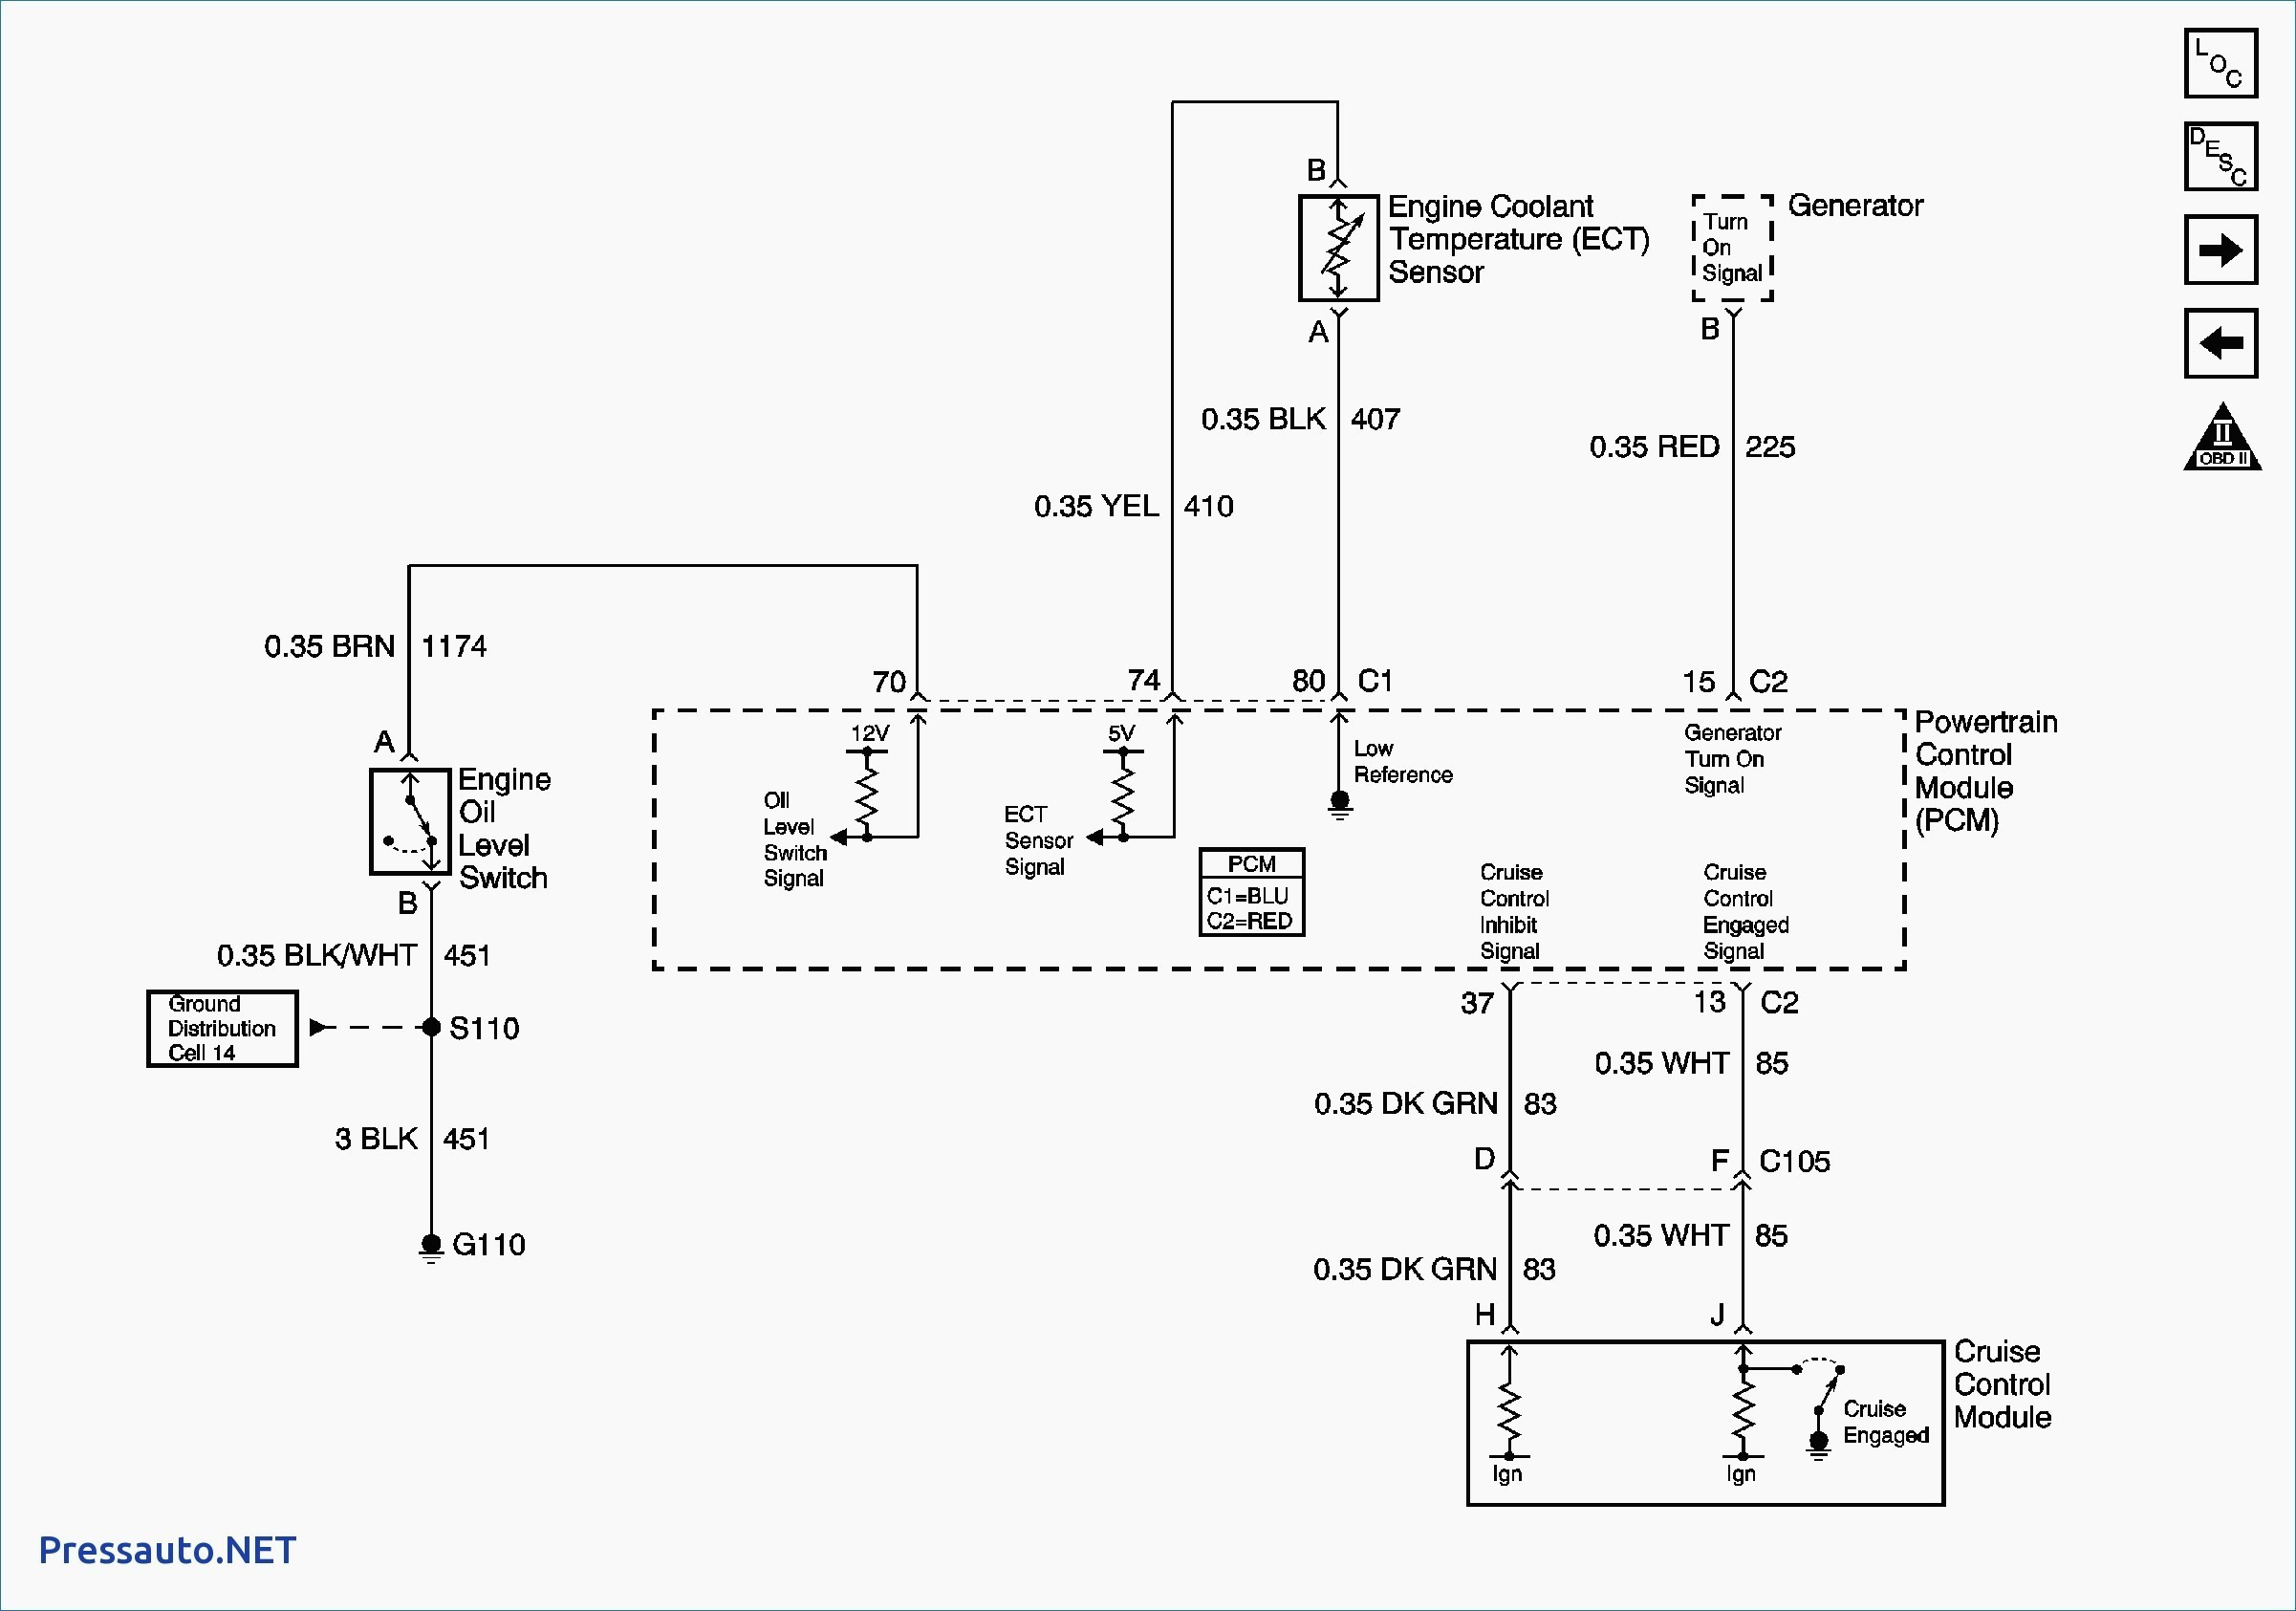 air compressor pressure switch wiring diagram Collection-Wiring Diagram For  Air pressor Pressure Switch Inspirationa